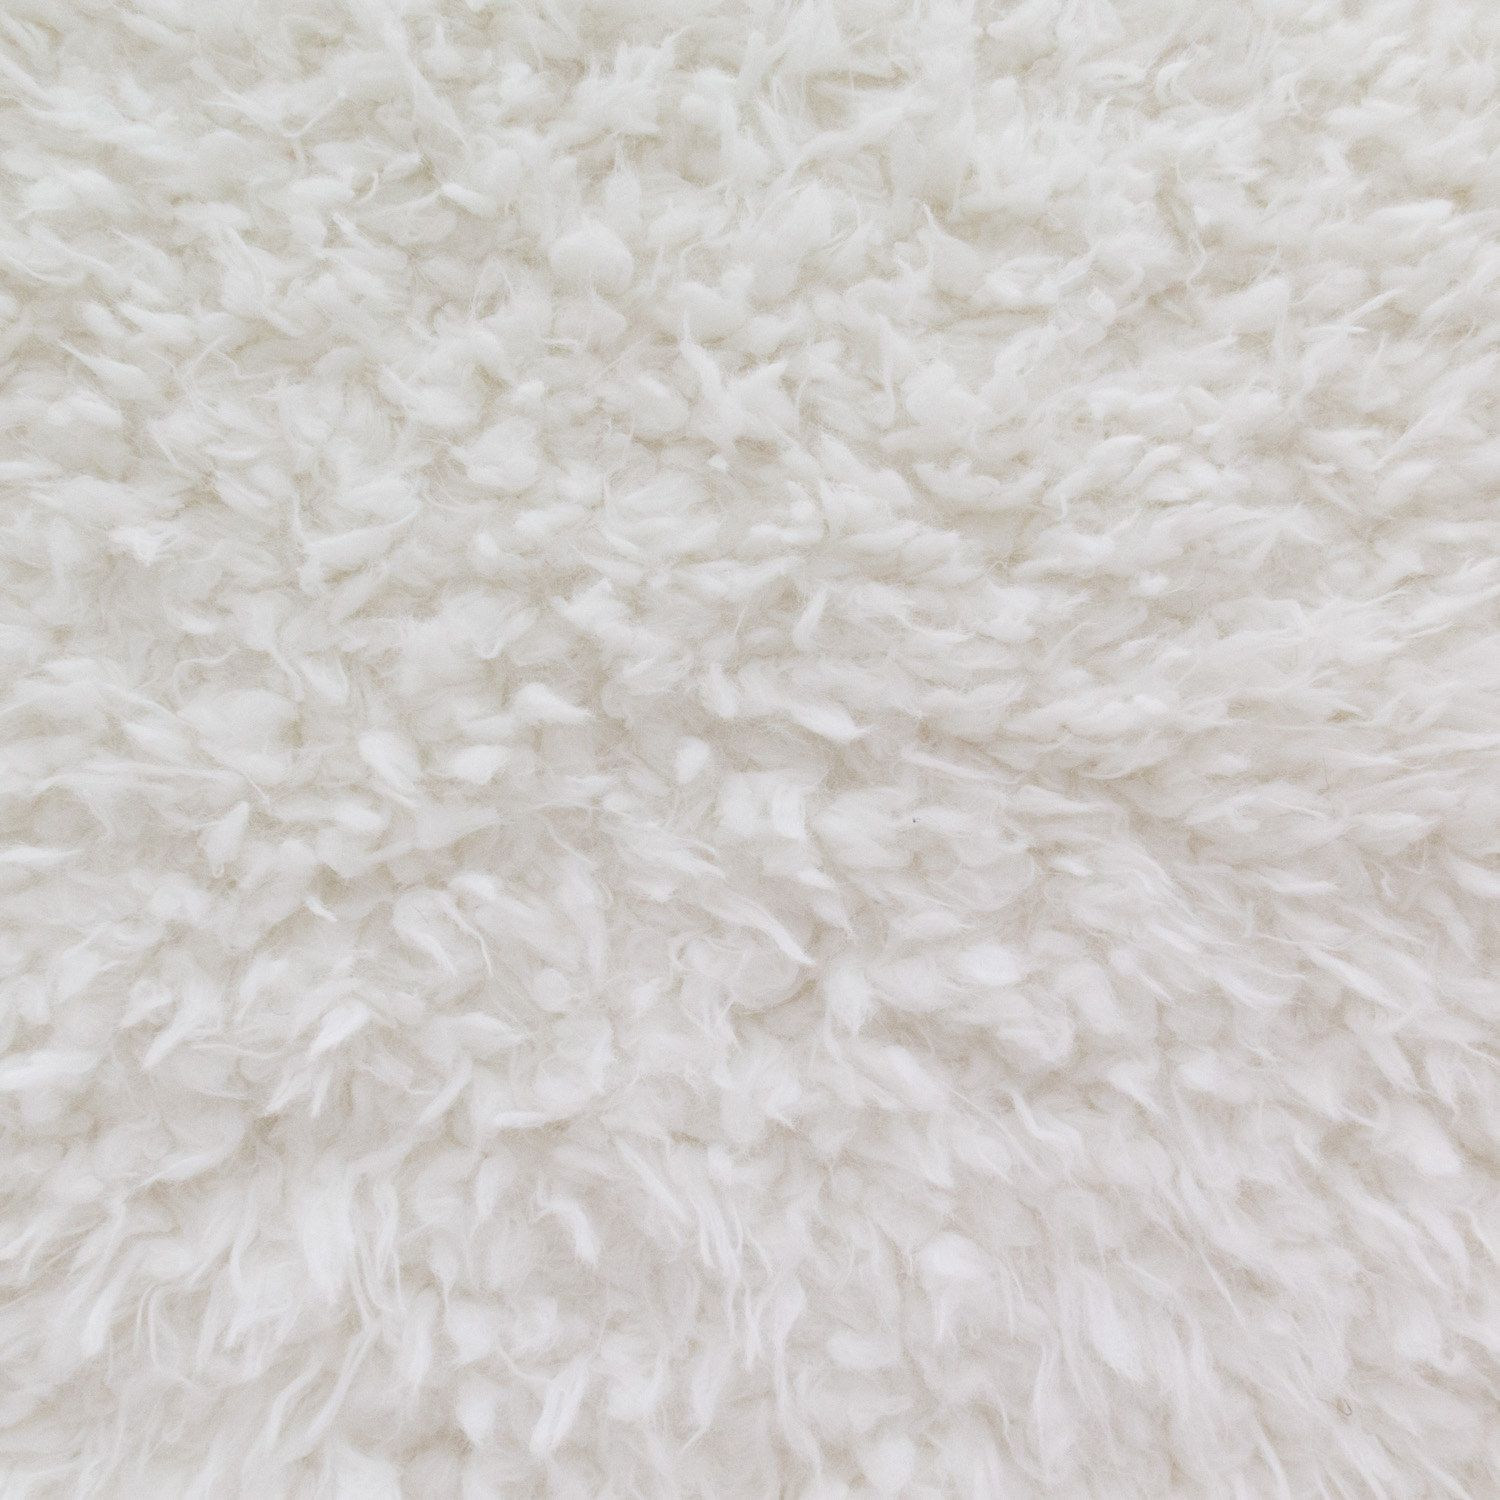 white fur rug texture - Google Search | Fur/Carpet Texture ...